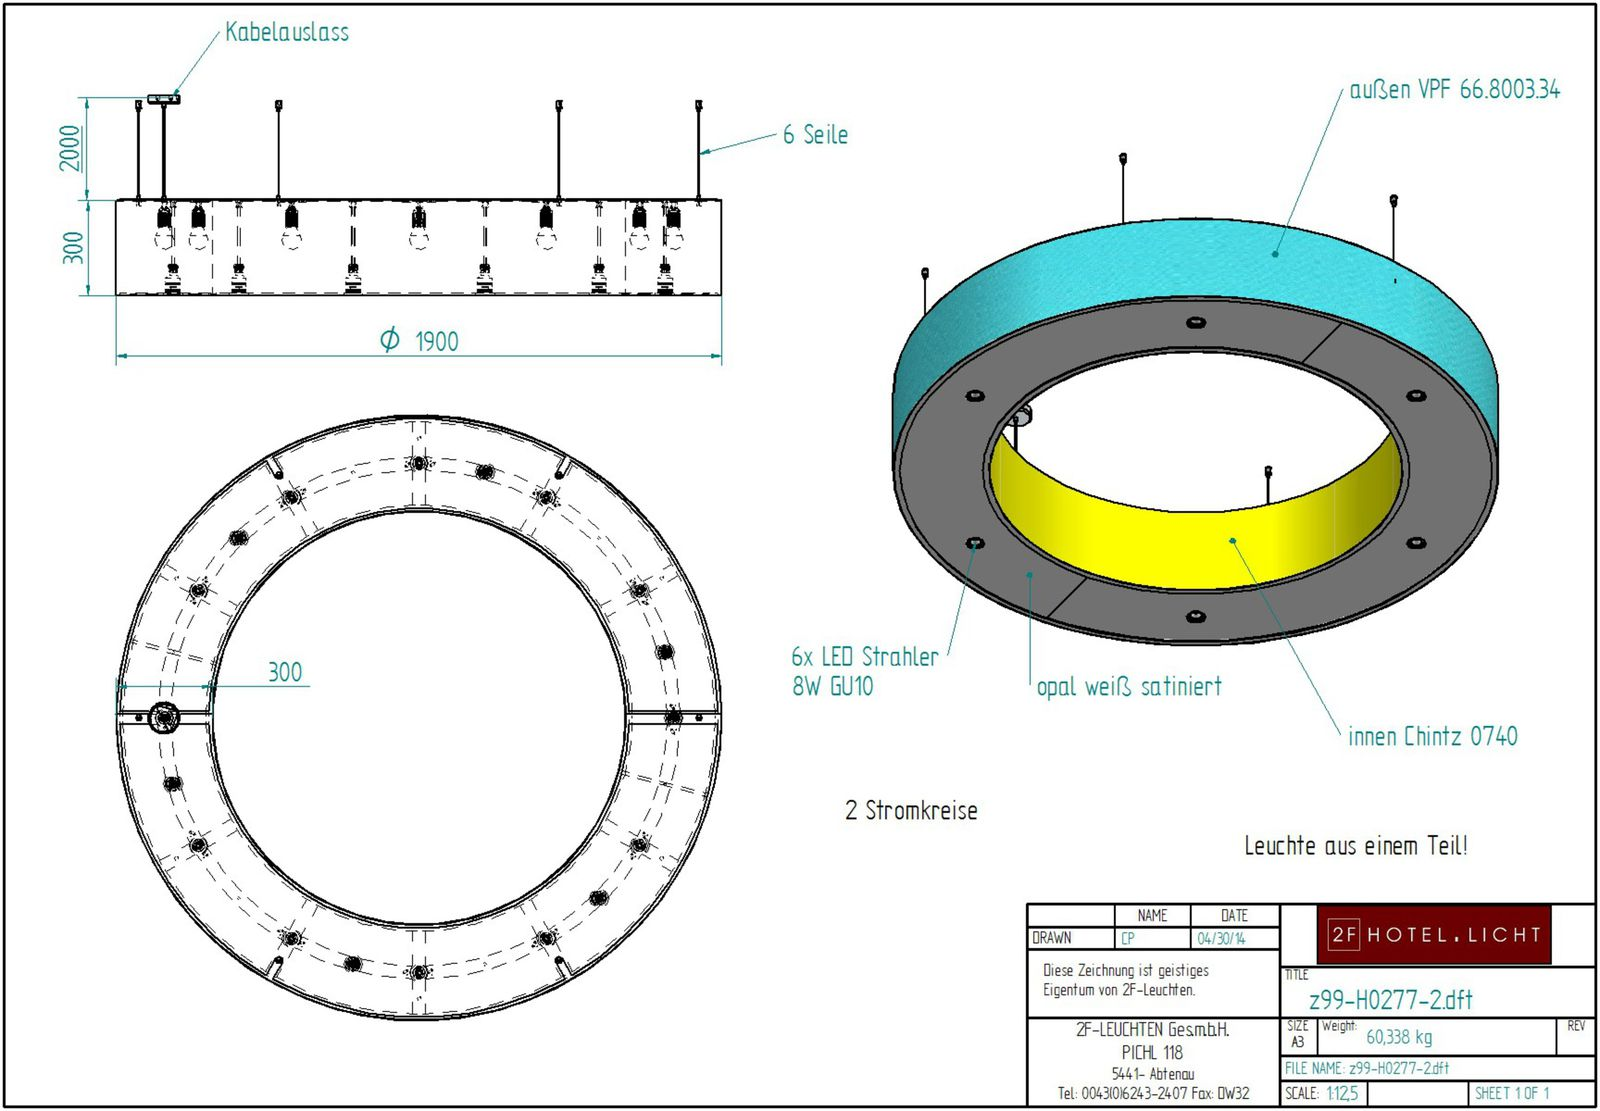 Pendant lamp, diameter=800mm, 600mm, techn. details: 12x9W Power LED